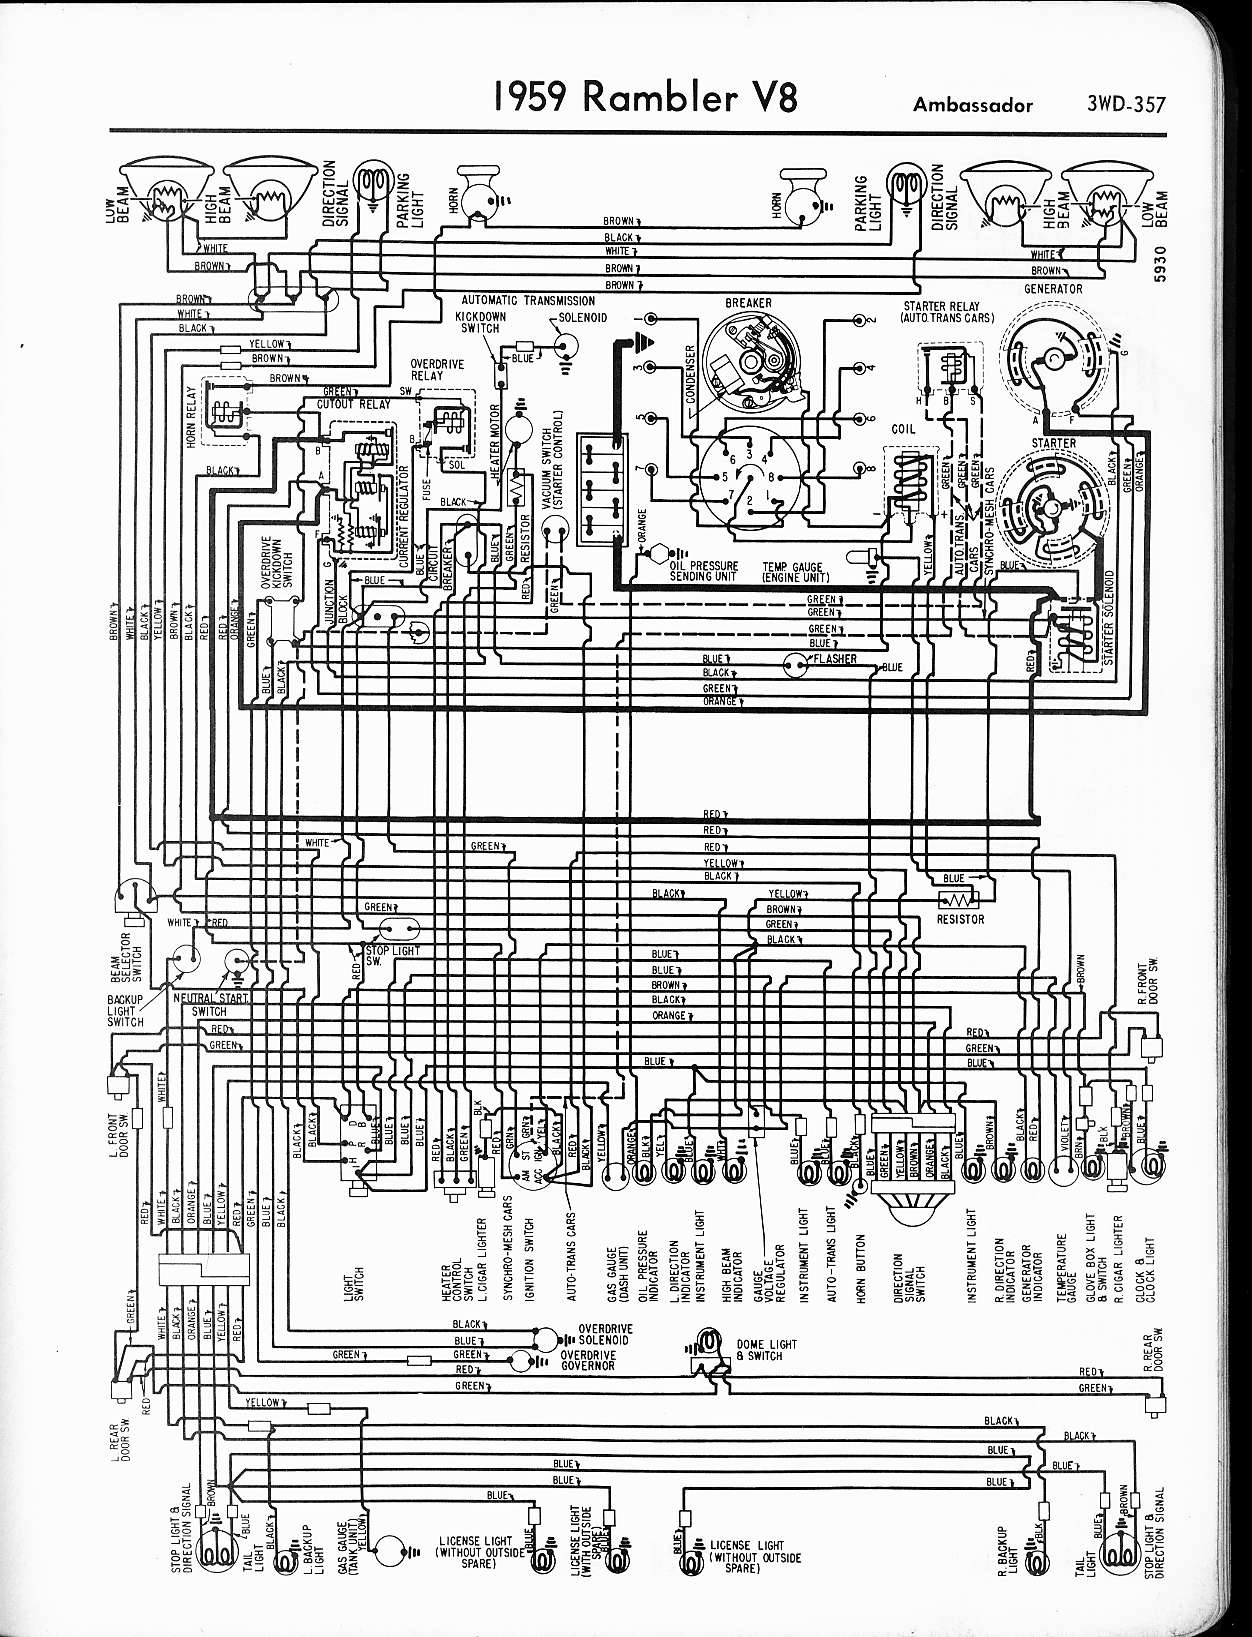 rambler wiring diagrams the old car manual project rh oldcarmanualproject com Trailer Wiring Harness Diagram Trailer Wiring Harness Diagram